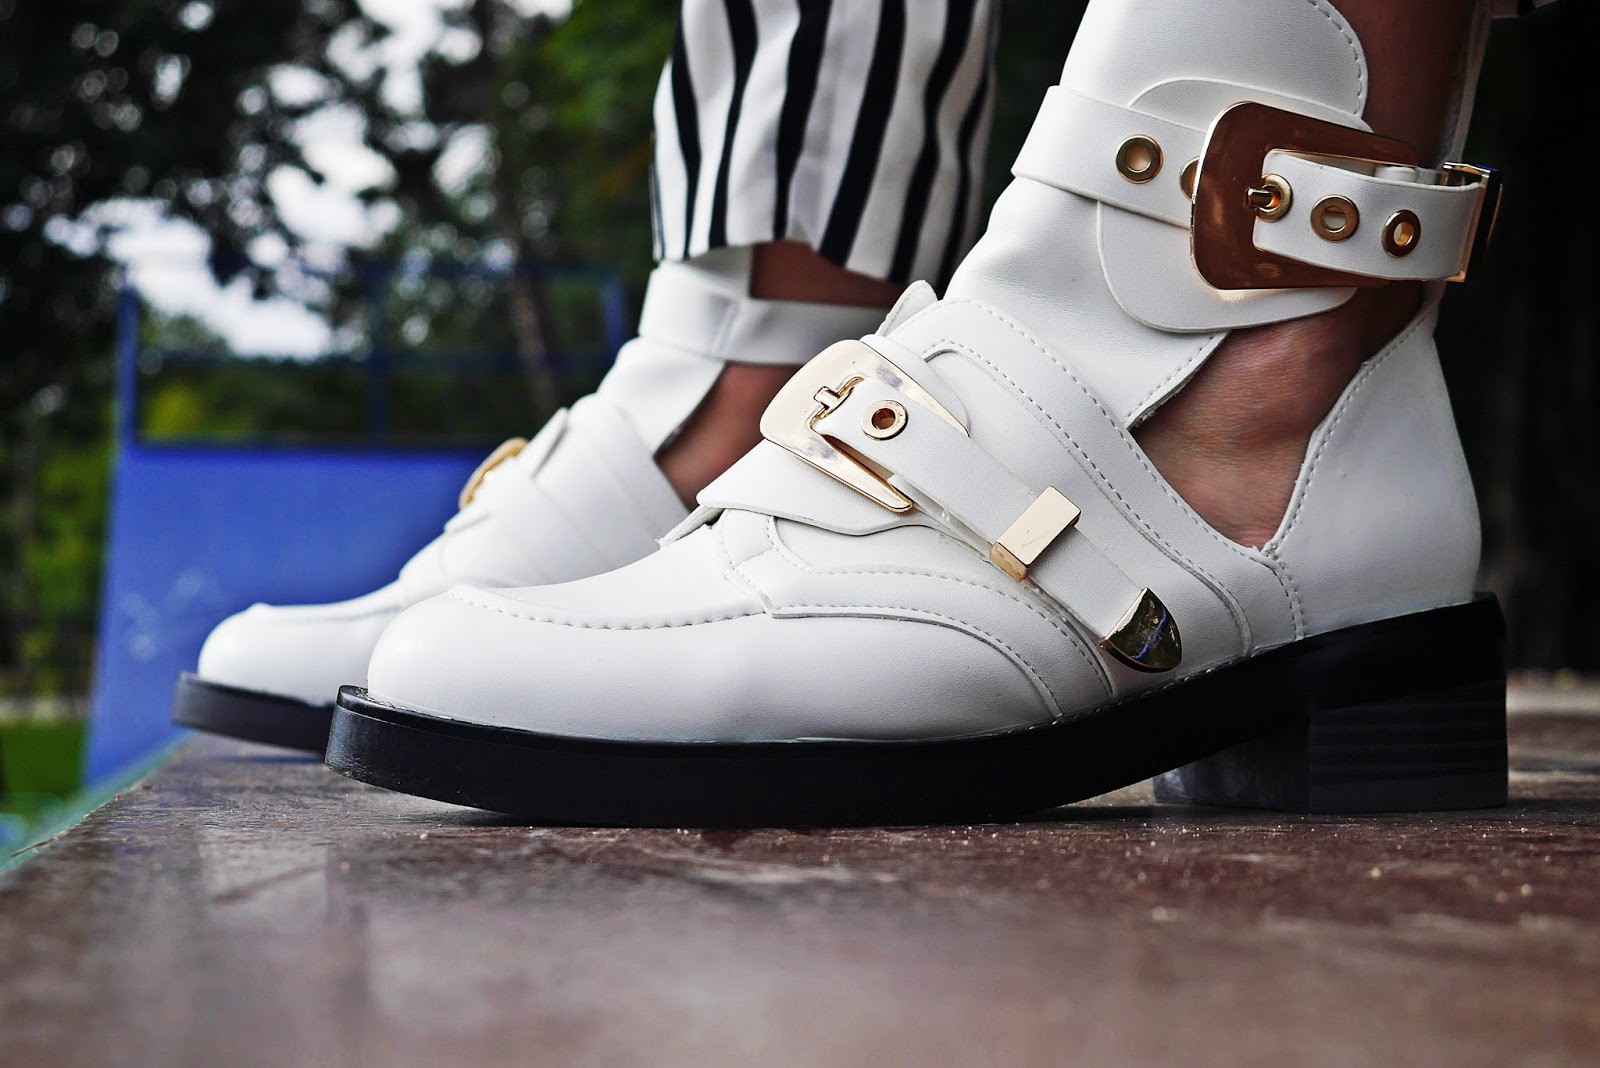 5_balenciaga_white_Ceinture_Ankle_Boots_stripes_pants_black_jacket_karyn_blog_modowy_280917dfg